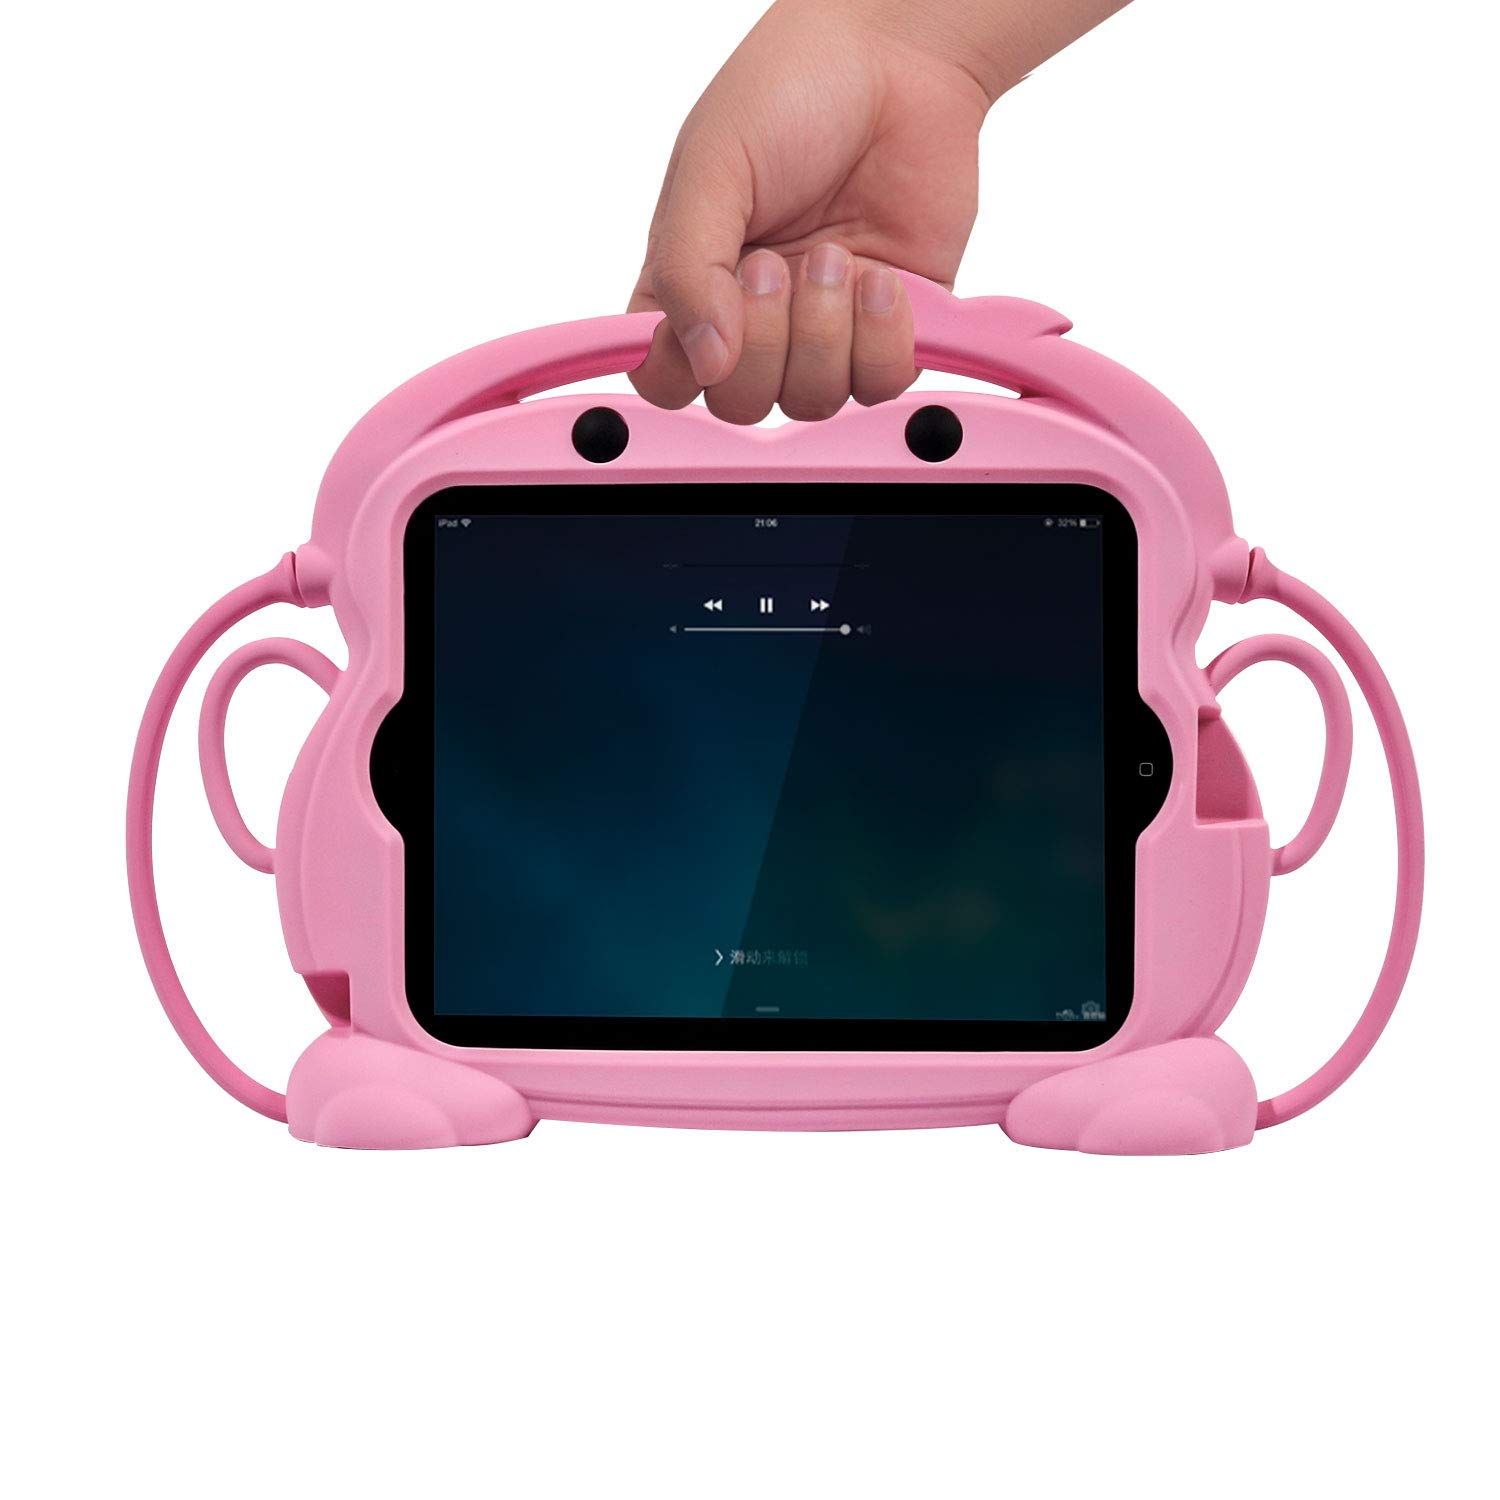 CHIN FAI iPad 2 3 4 Case for Kids, Child Proof Silicone Protective Car Case Cute Monkey Handle Stand Cover for Apple iPad 2nd 3rd 4th Generation (Pink)